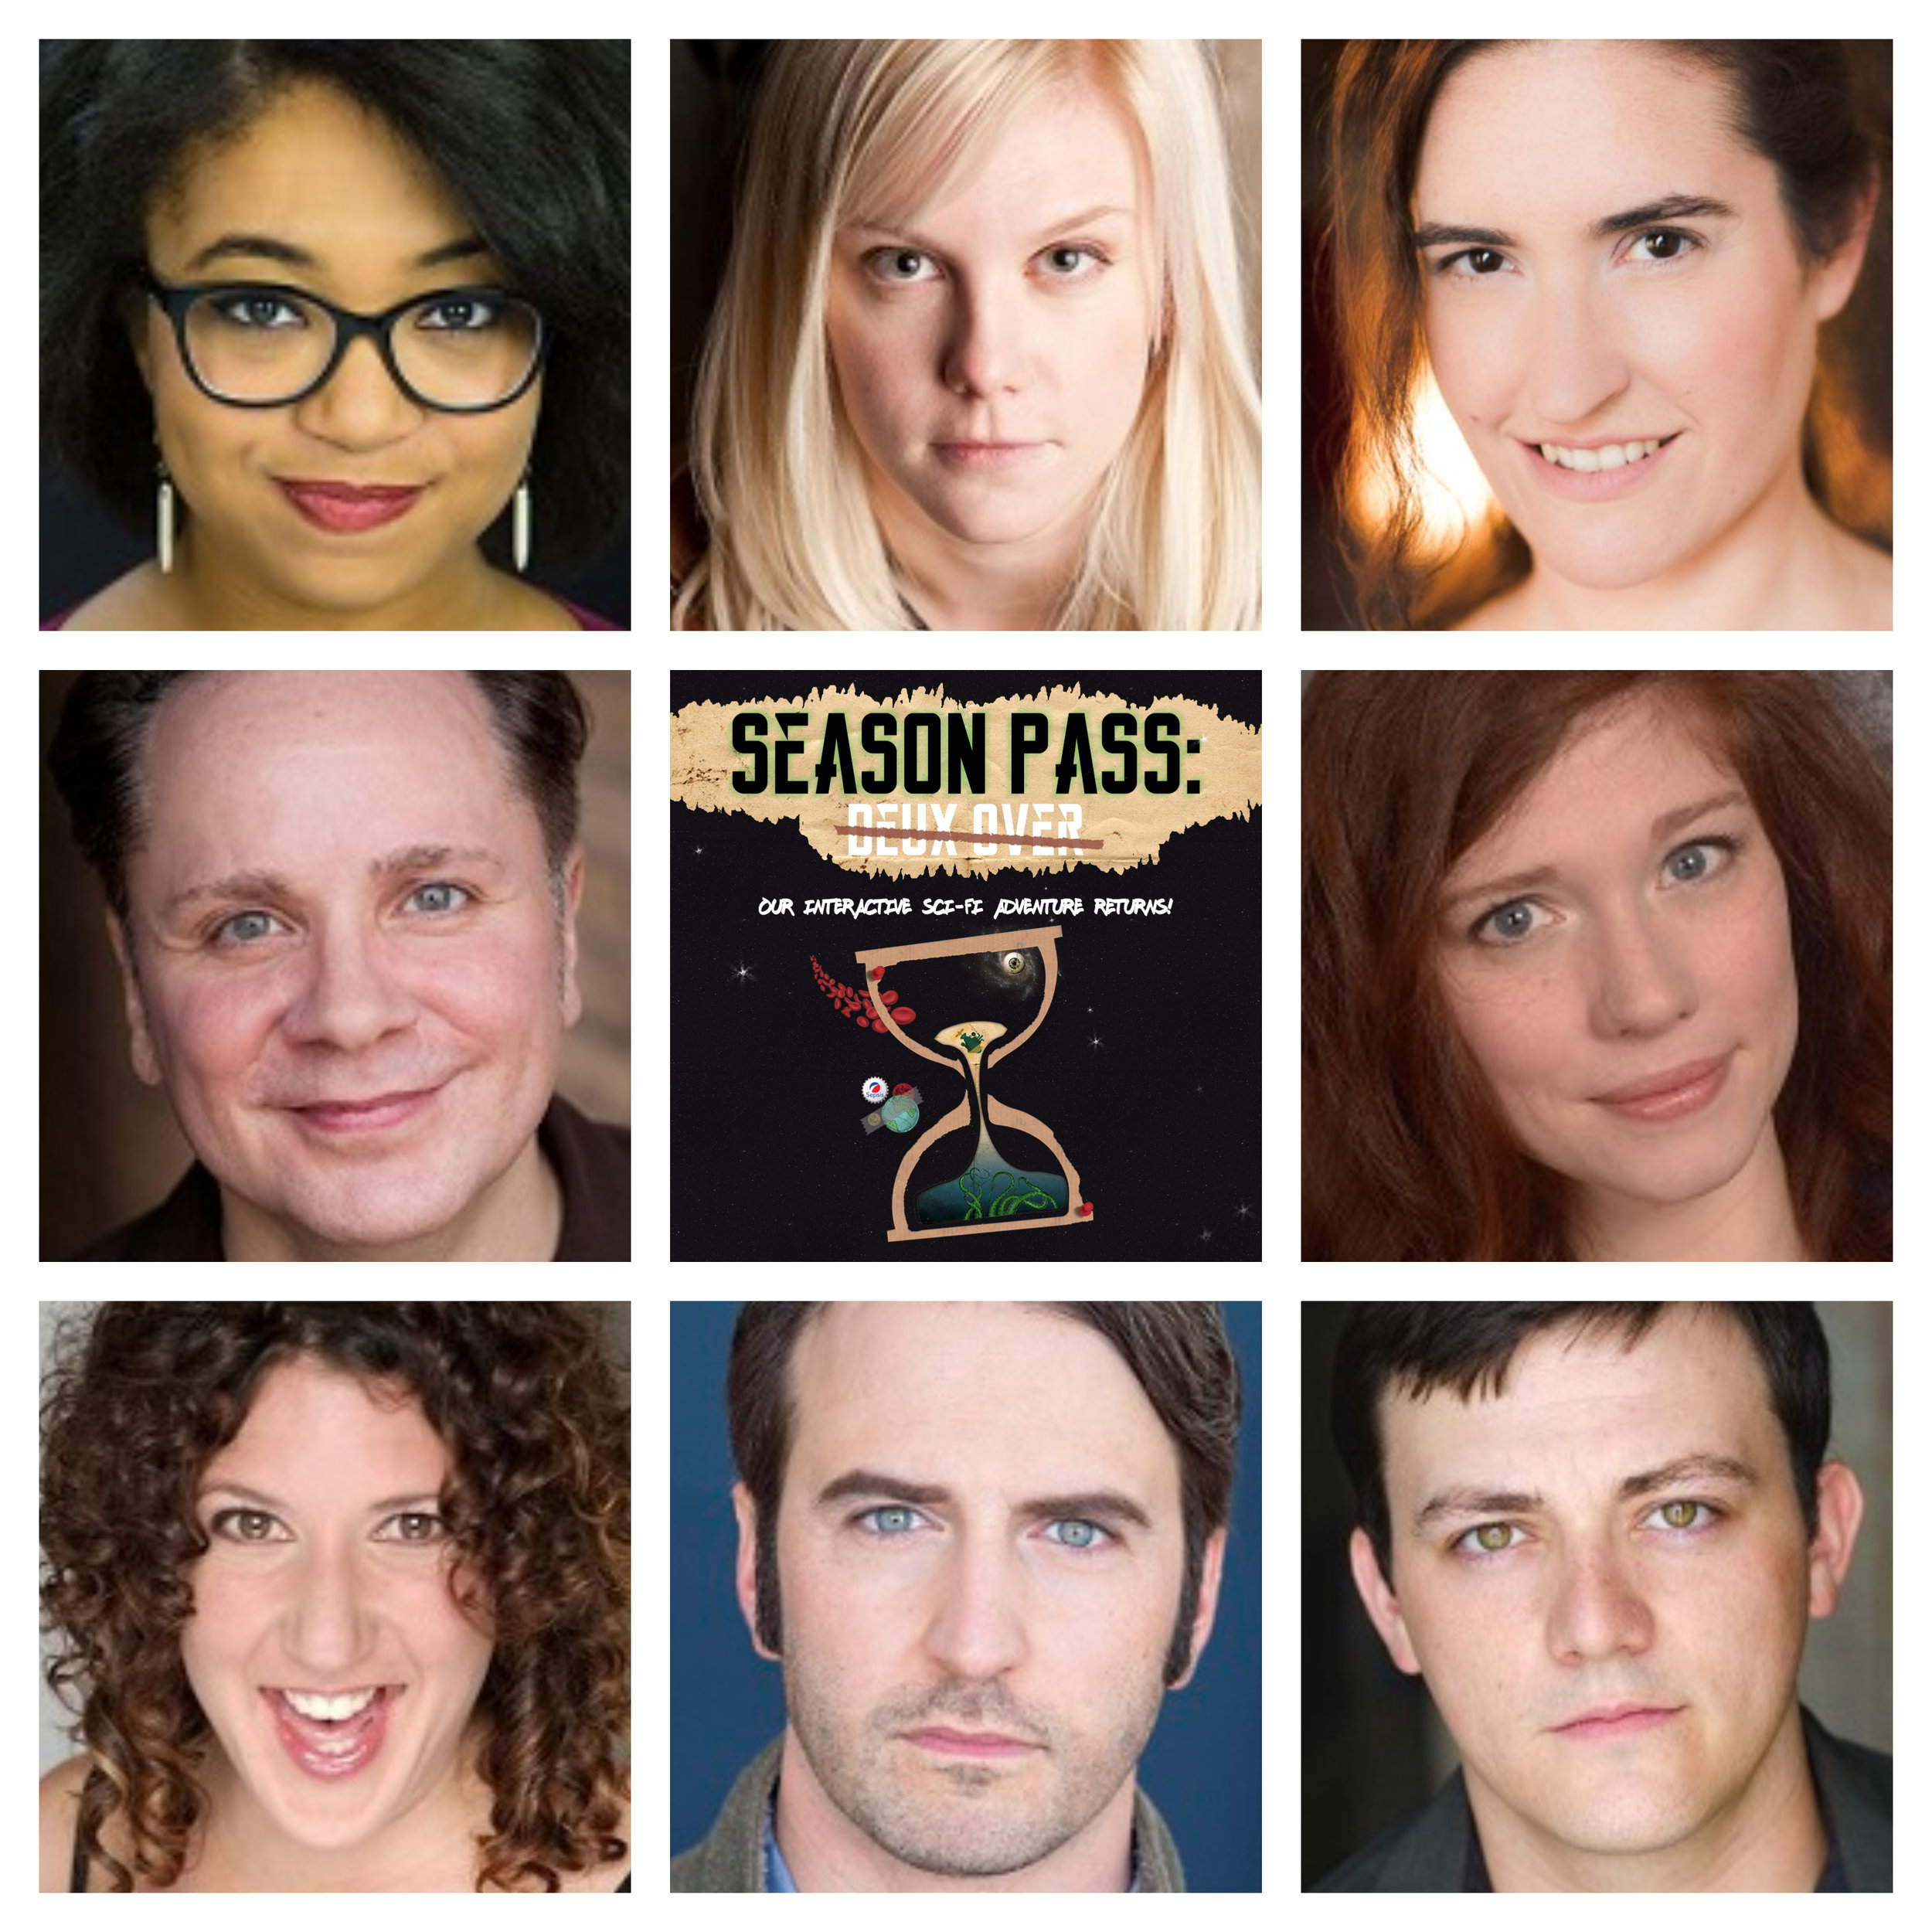 The cast of Season Pass: Deux Over